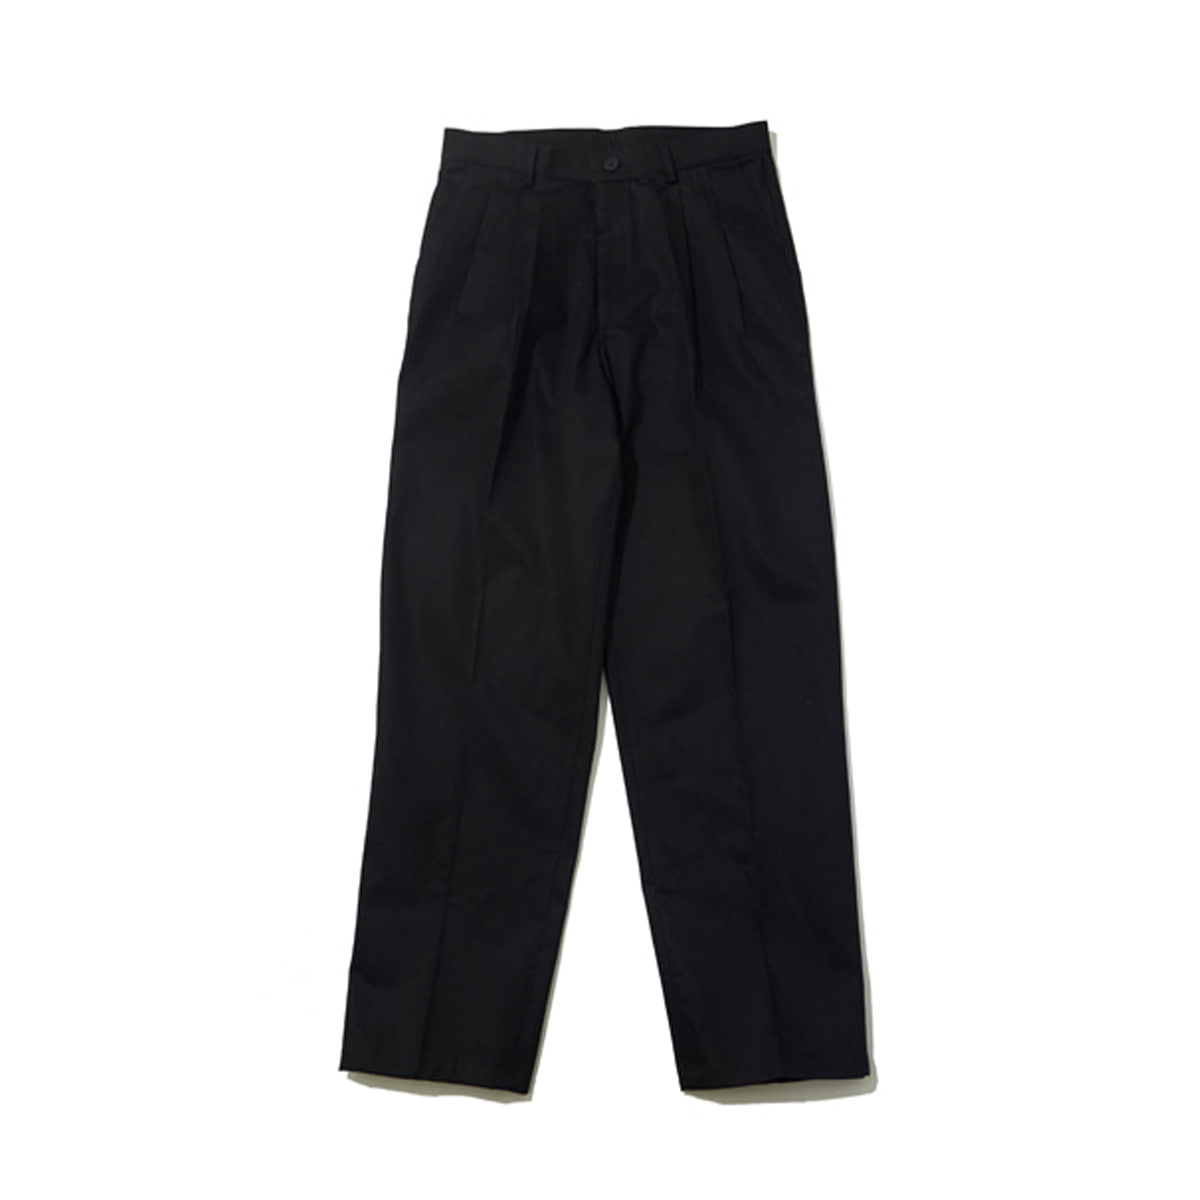 Primary Cotton Pants, Black